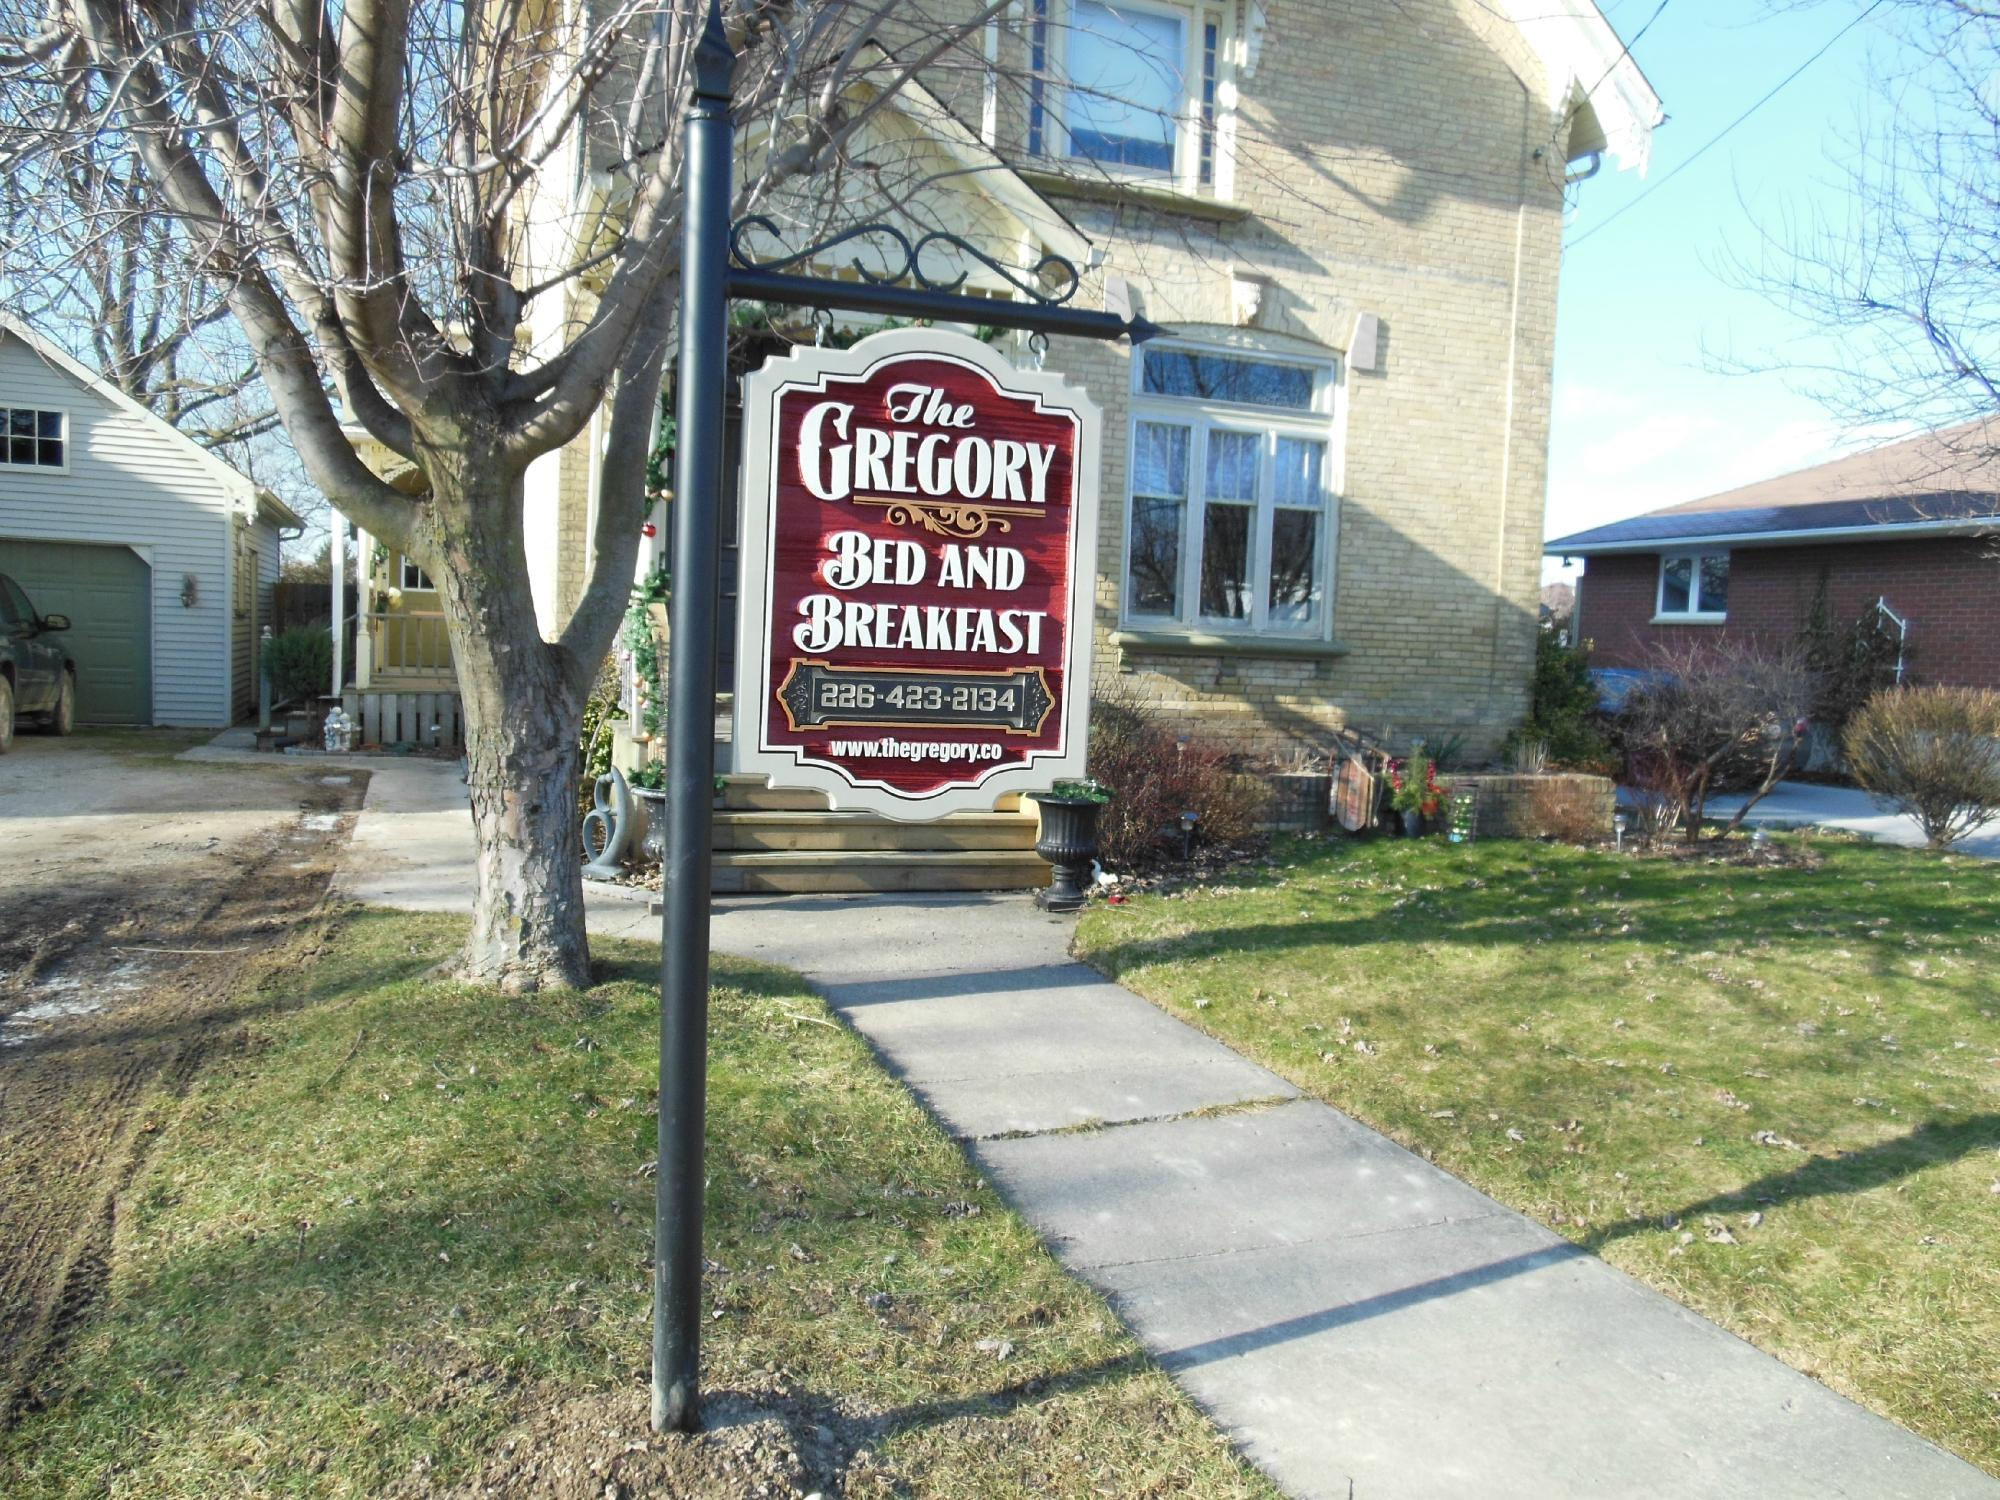 The Gregory Bed & Breakfast